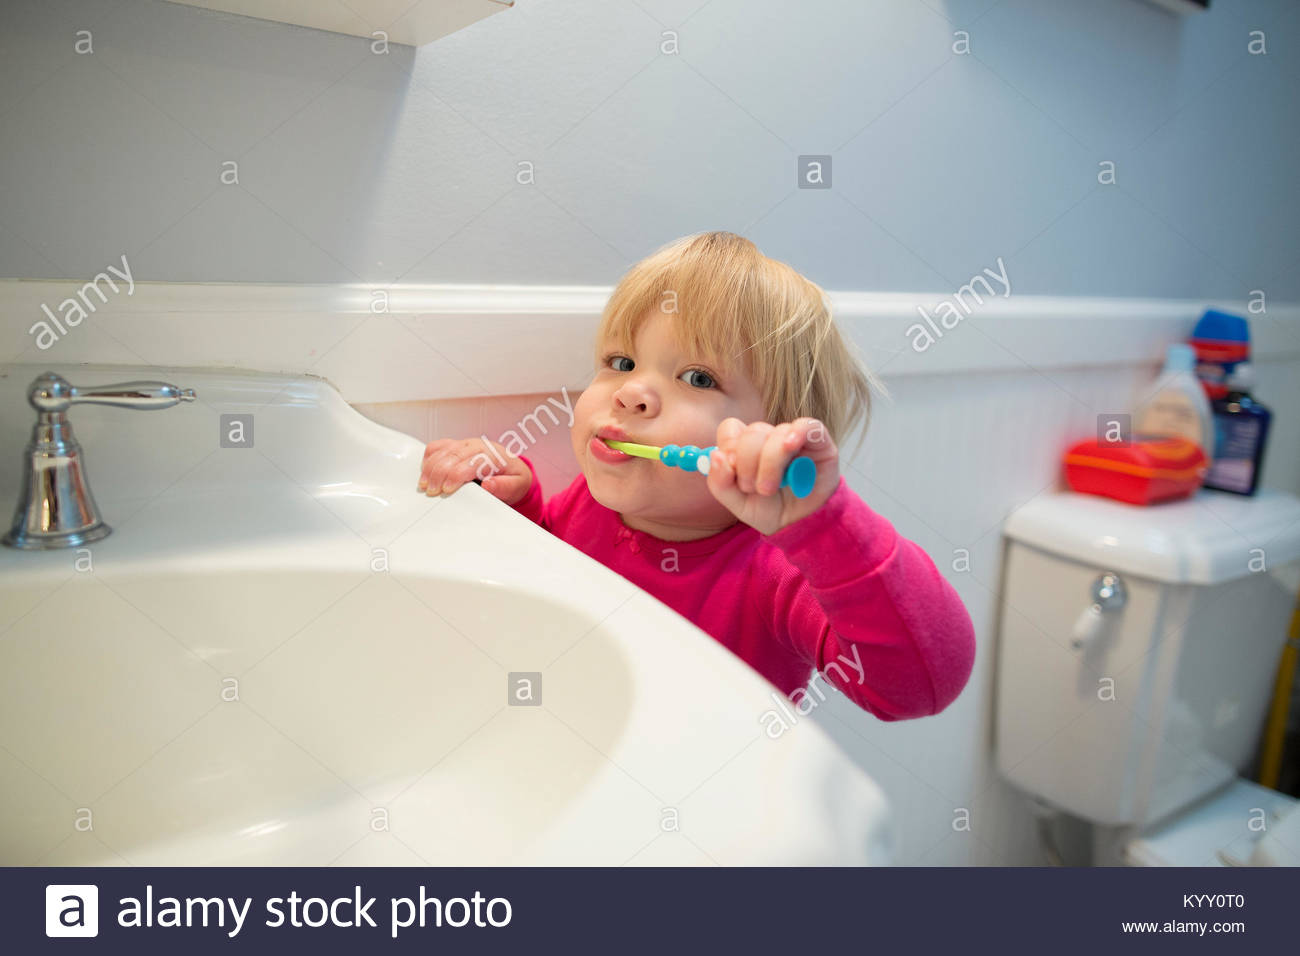 Portrait of girl brushing teeth by bathroom sink at home - Stock Image